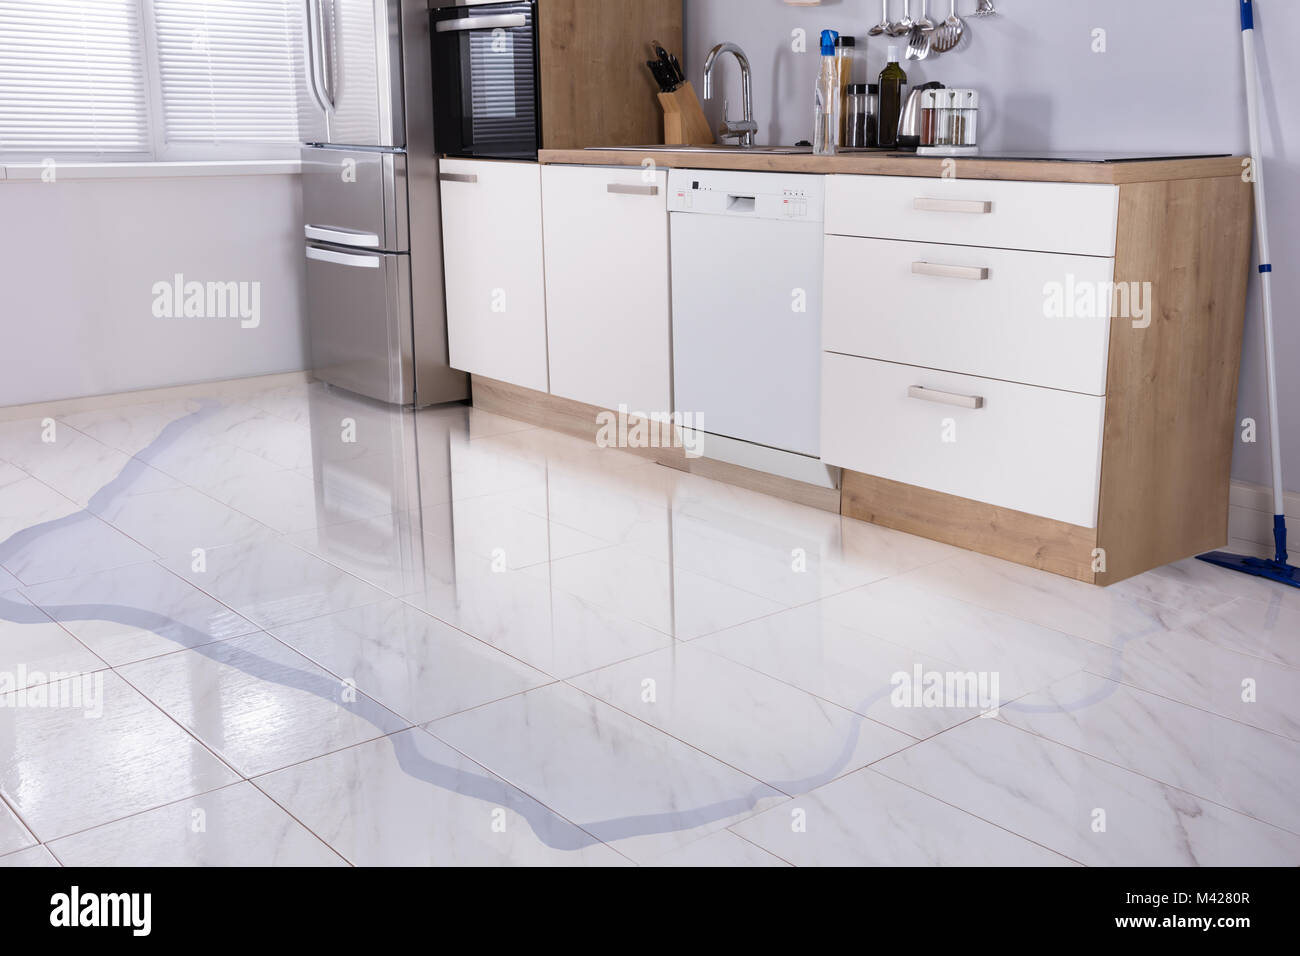 Floor Damage Stockfotos & Floor Damage Bilder - Alamy